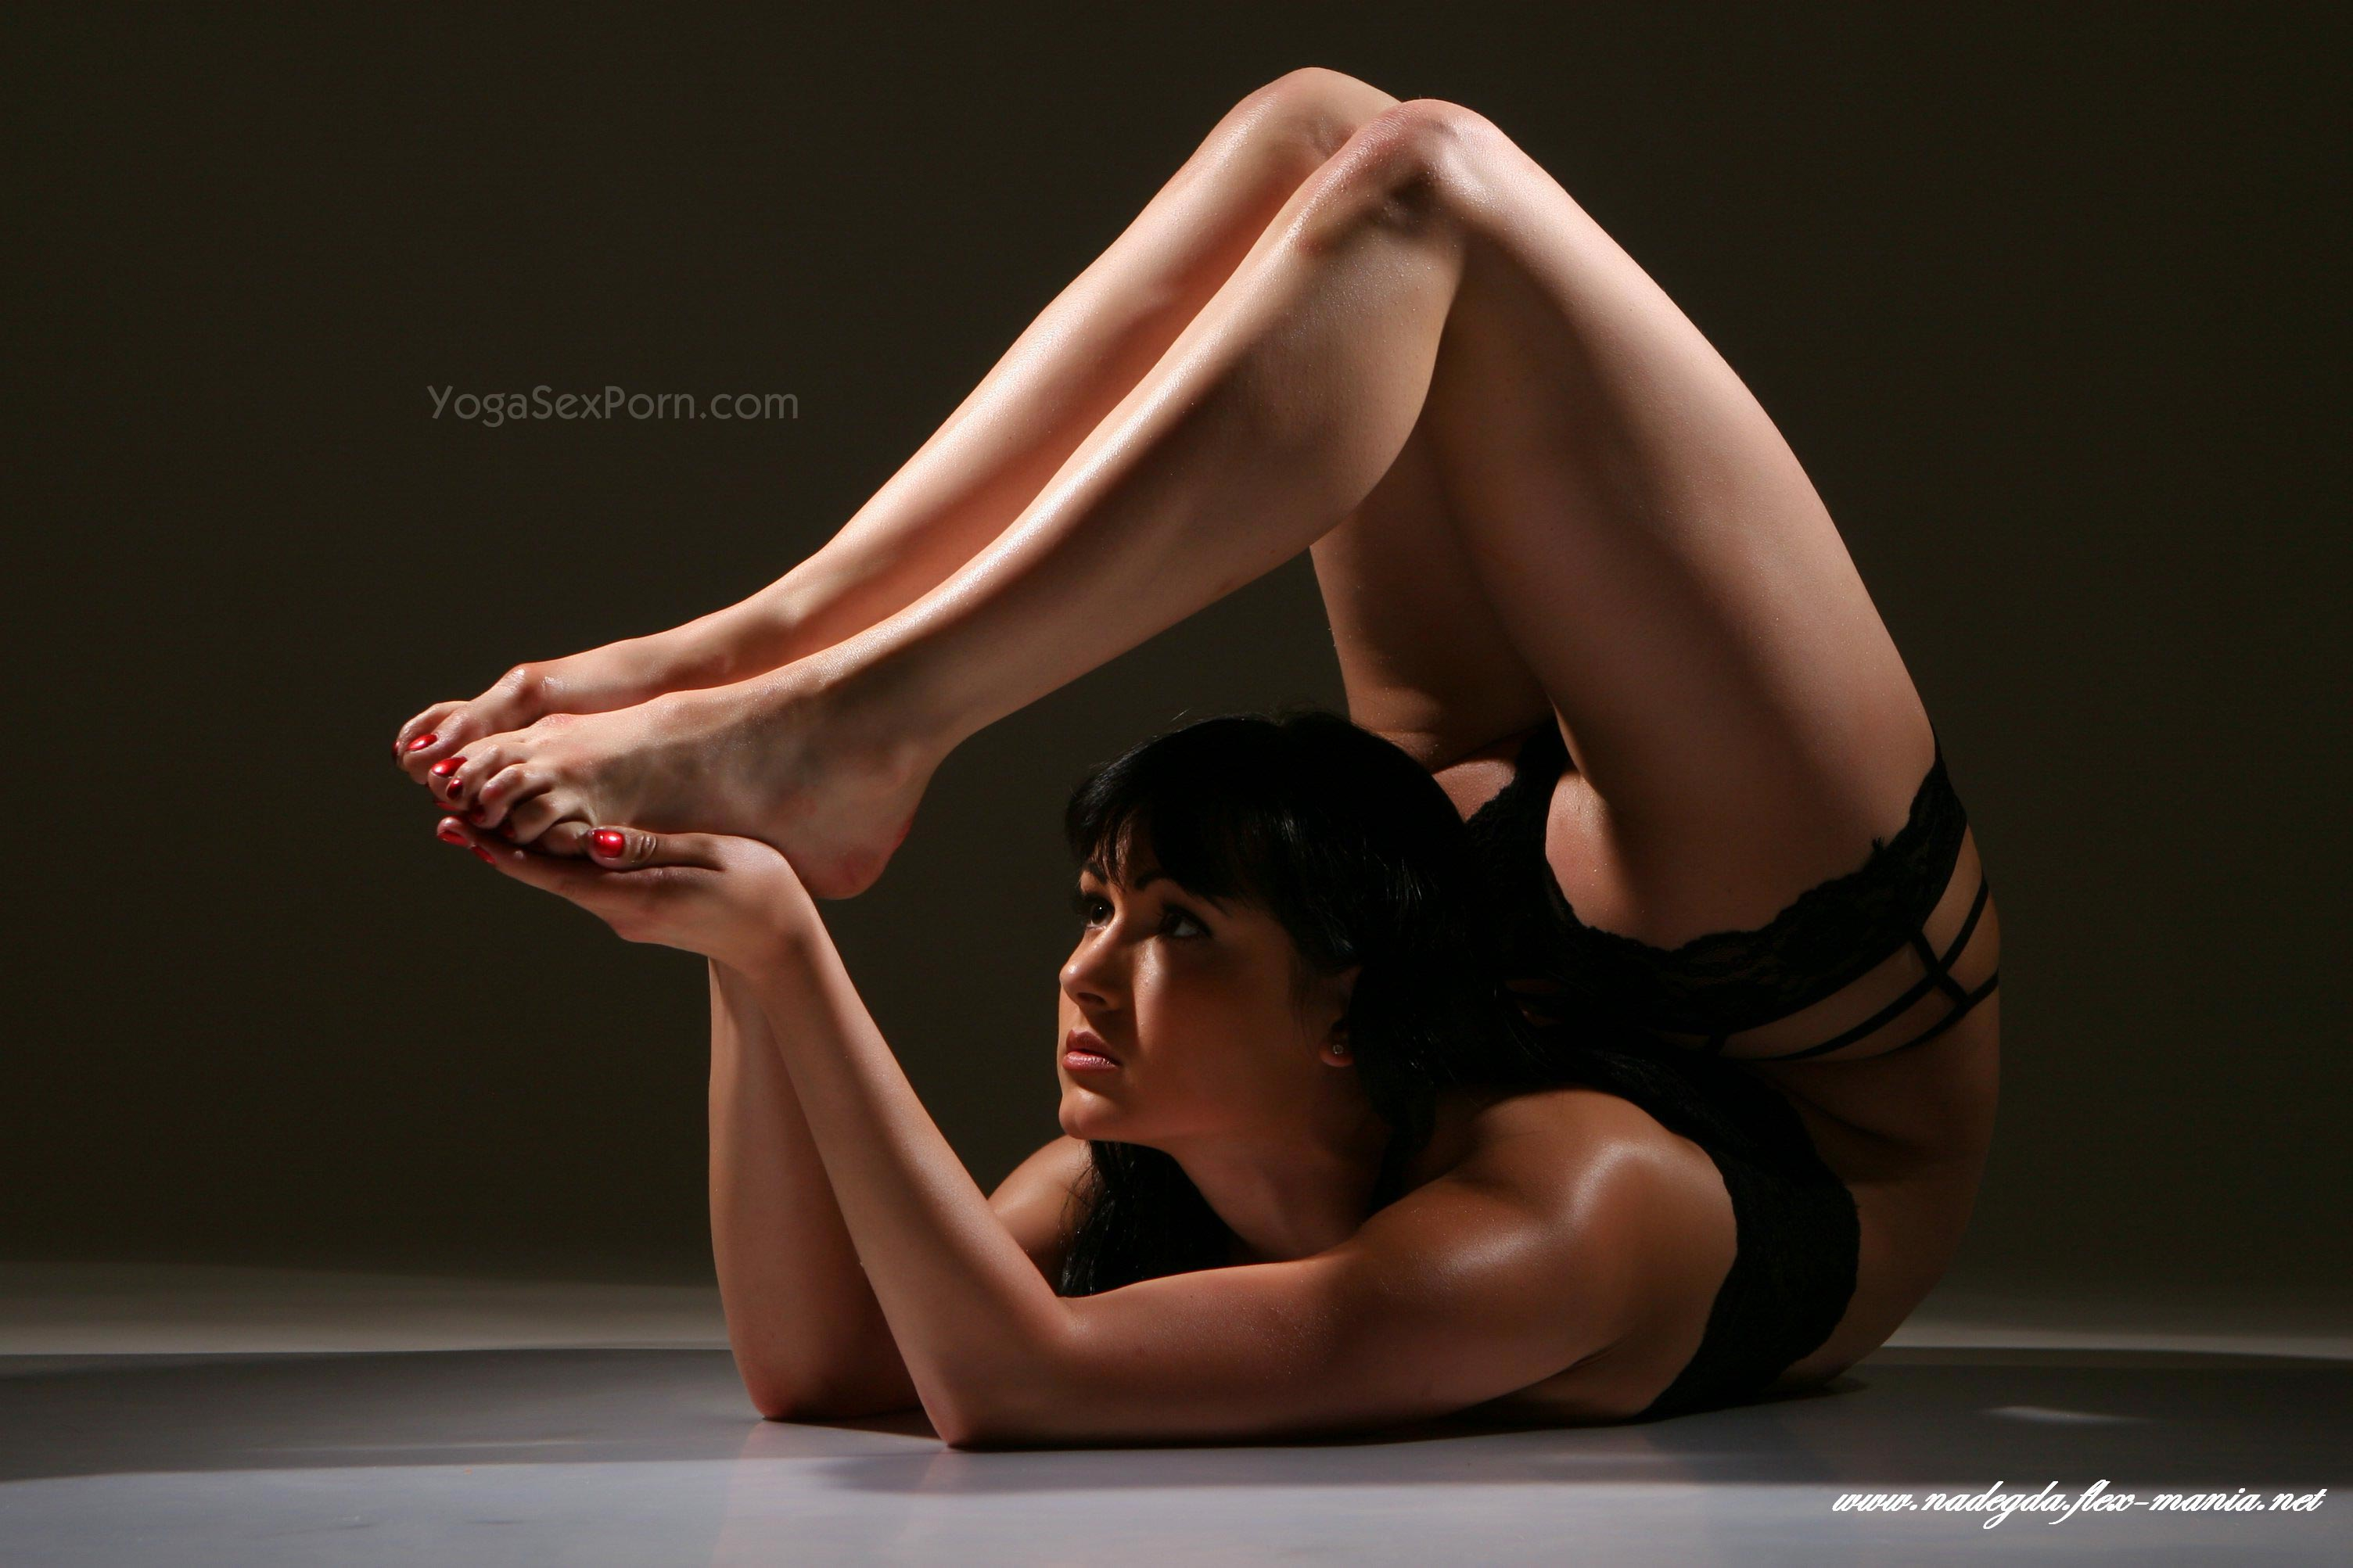 Sexy yoga girl Nadegda stands in different positions showing delights